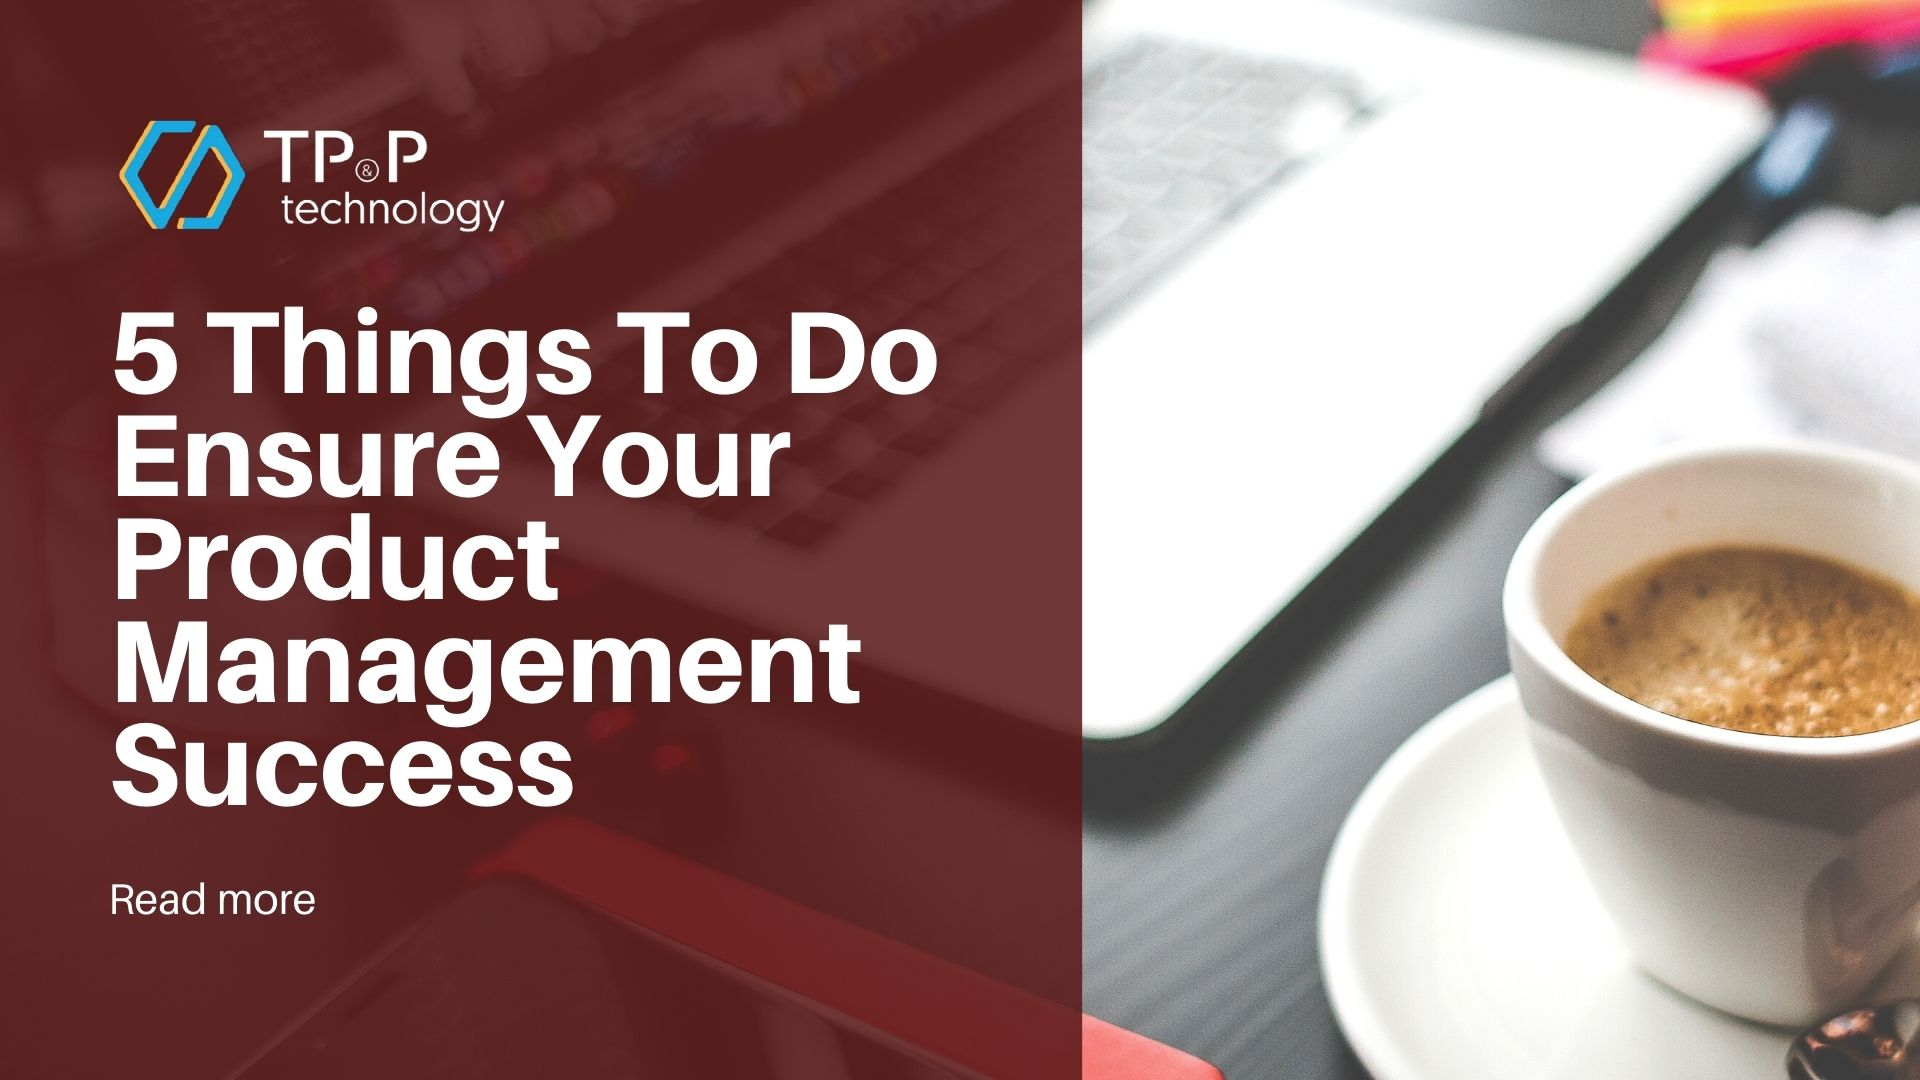 5 Things To Do Ensure Your Product Management Success